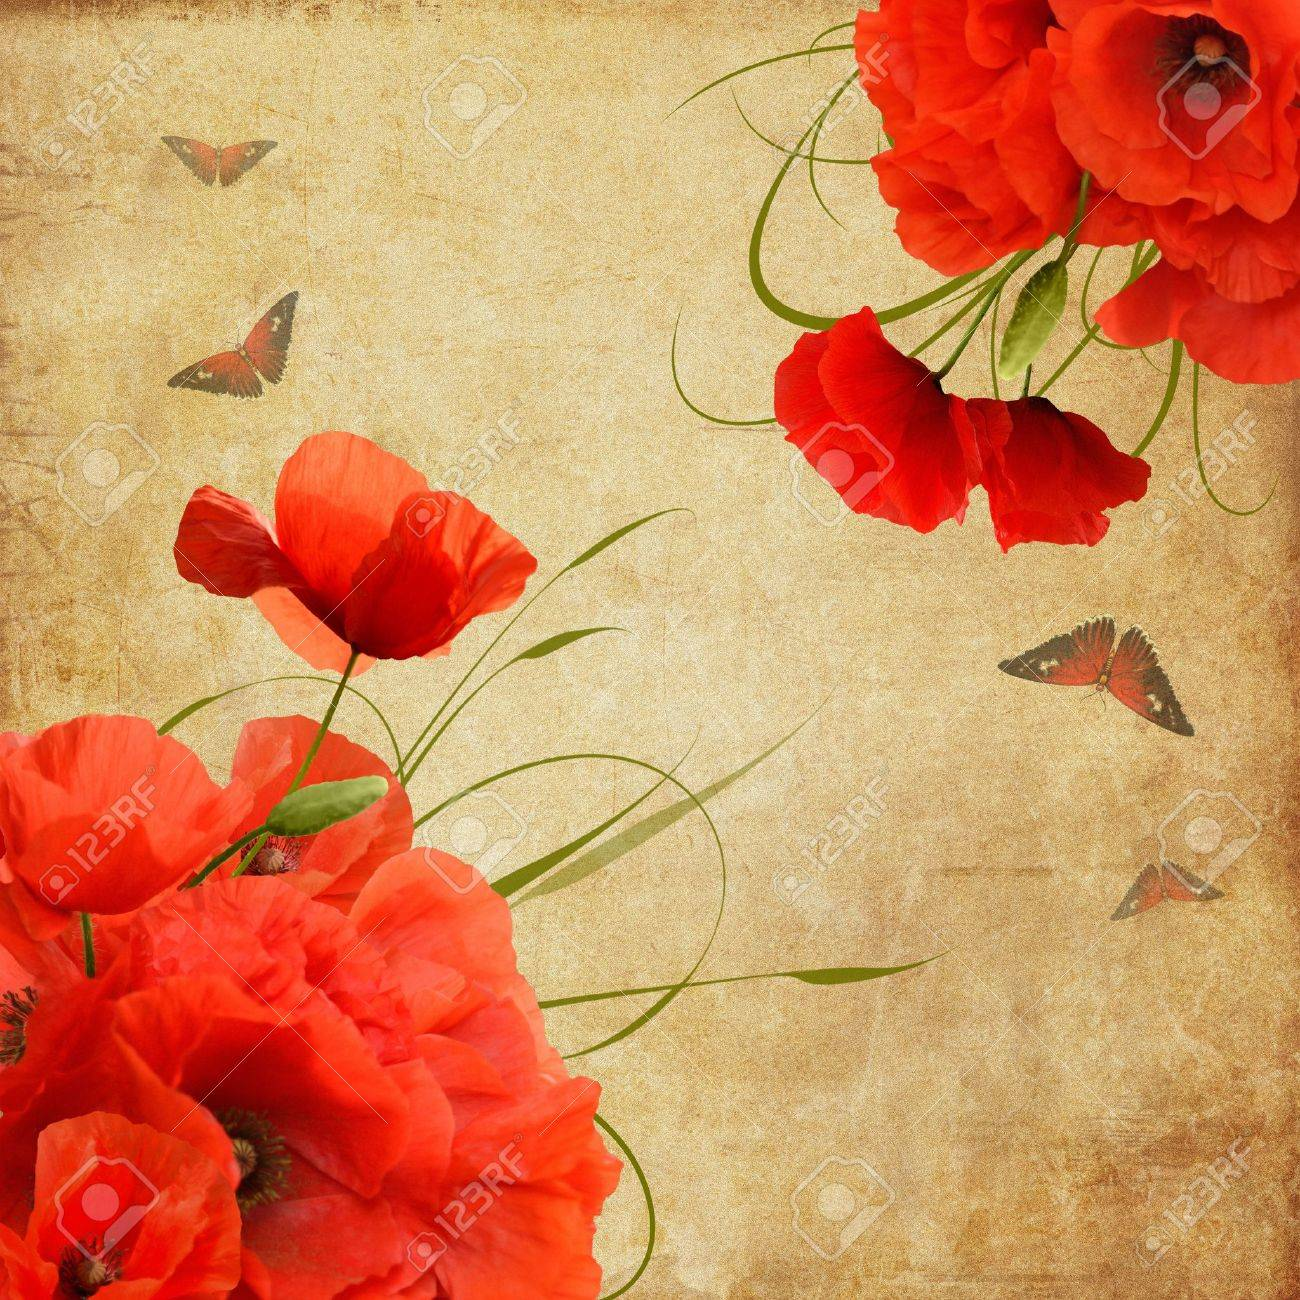 Vintage composition with poppies and butterflies Stock Photo - 19534995